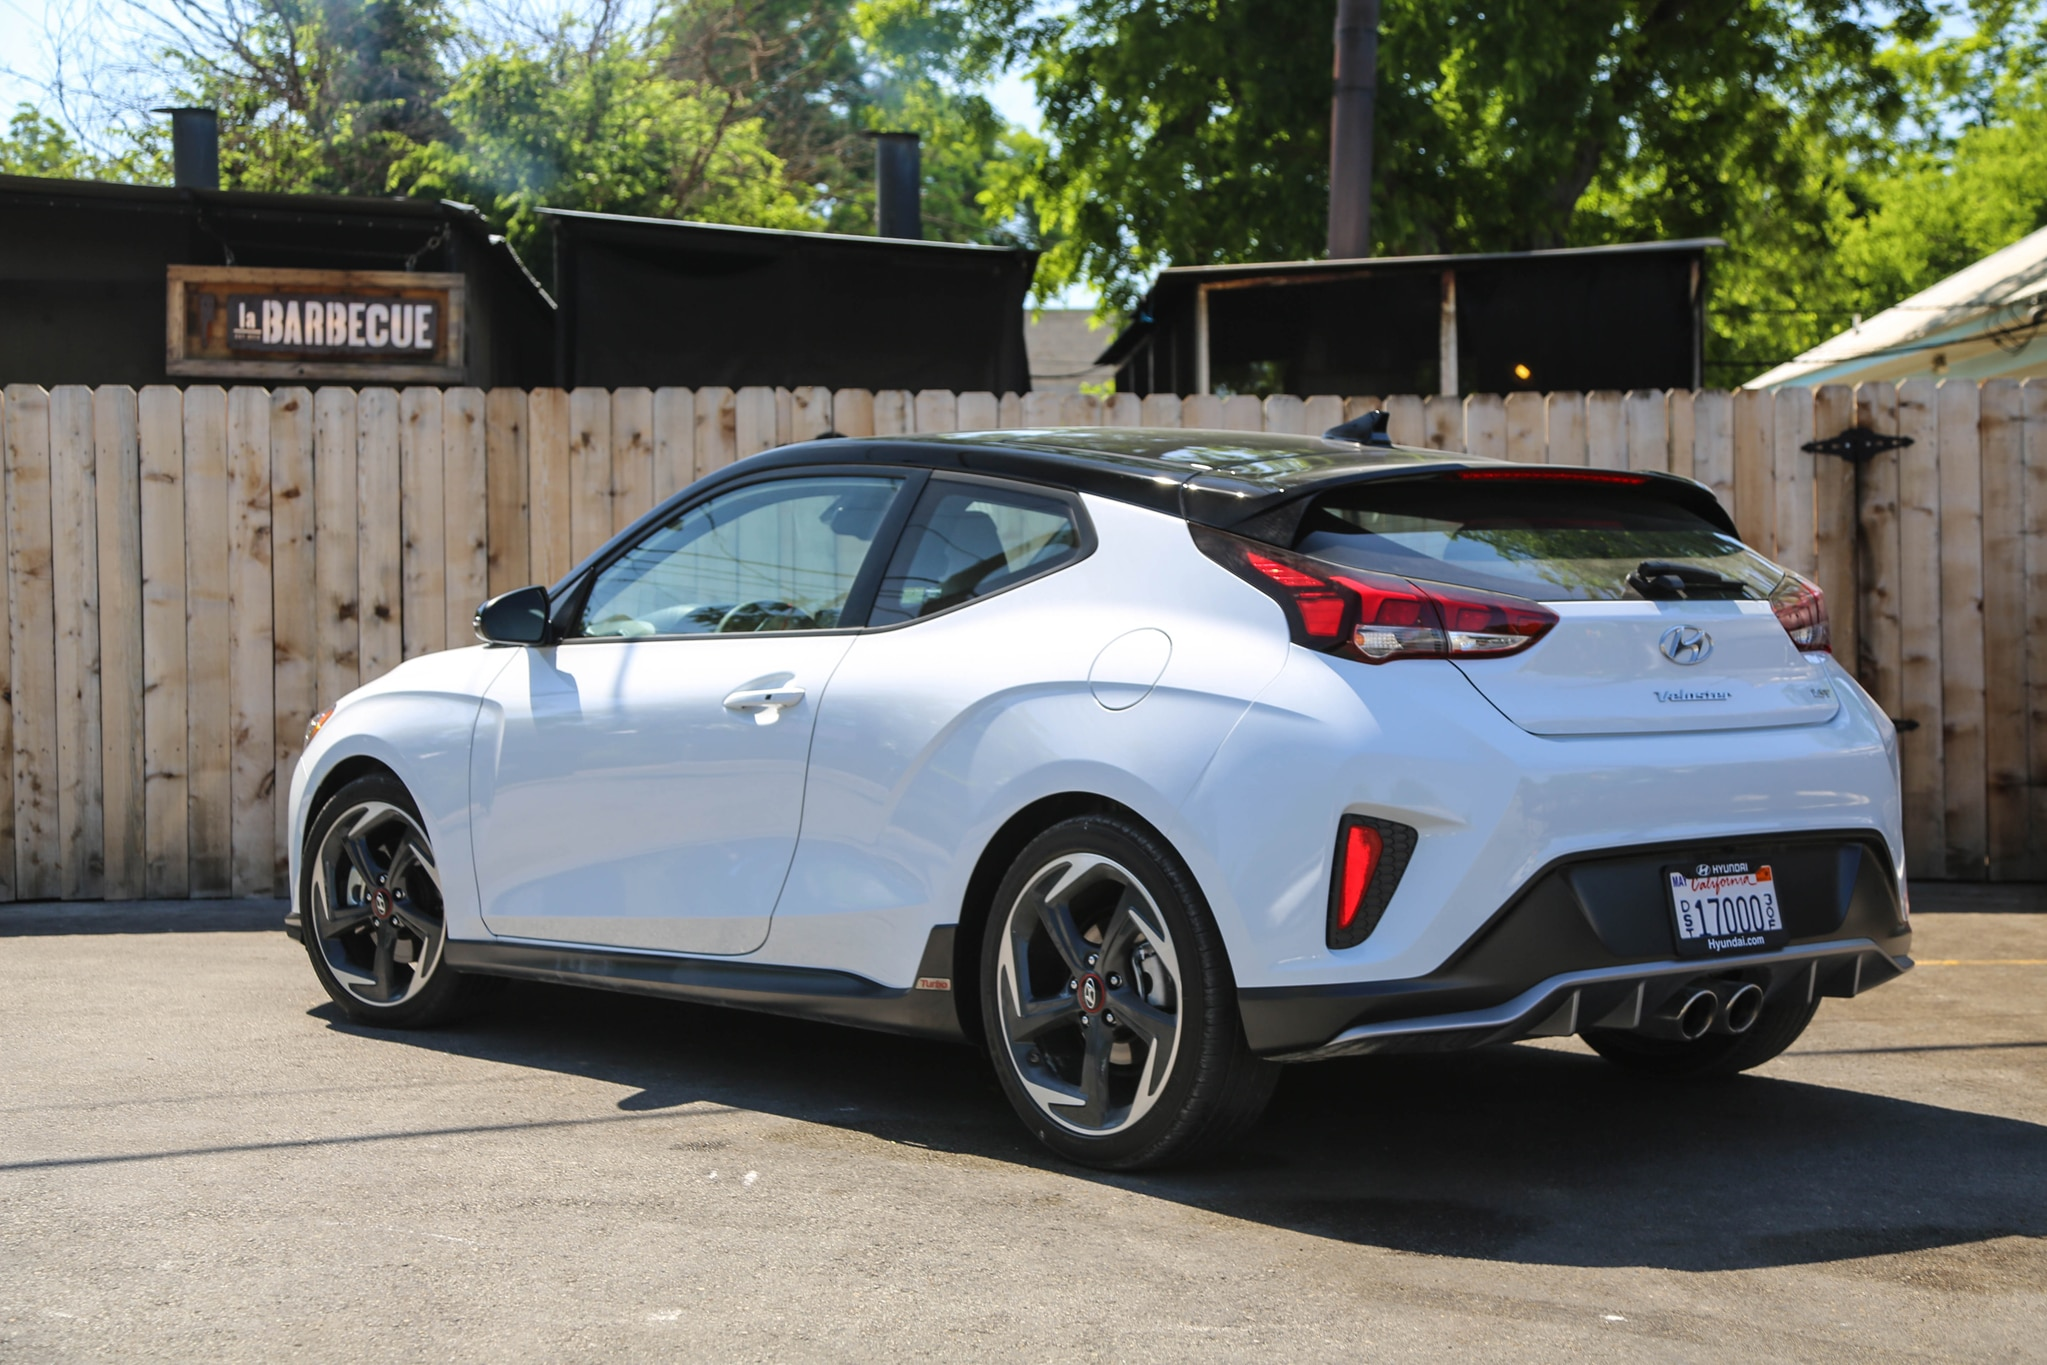 2019 Hyundai Veloster >> 2019 Hyundai Veloster Turbo R-Spec and Ultimate First Drive Review | Automobile Magazine